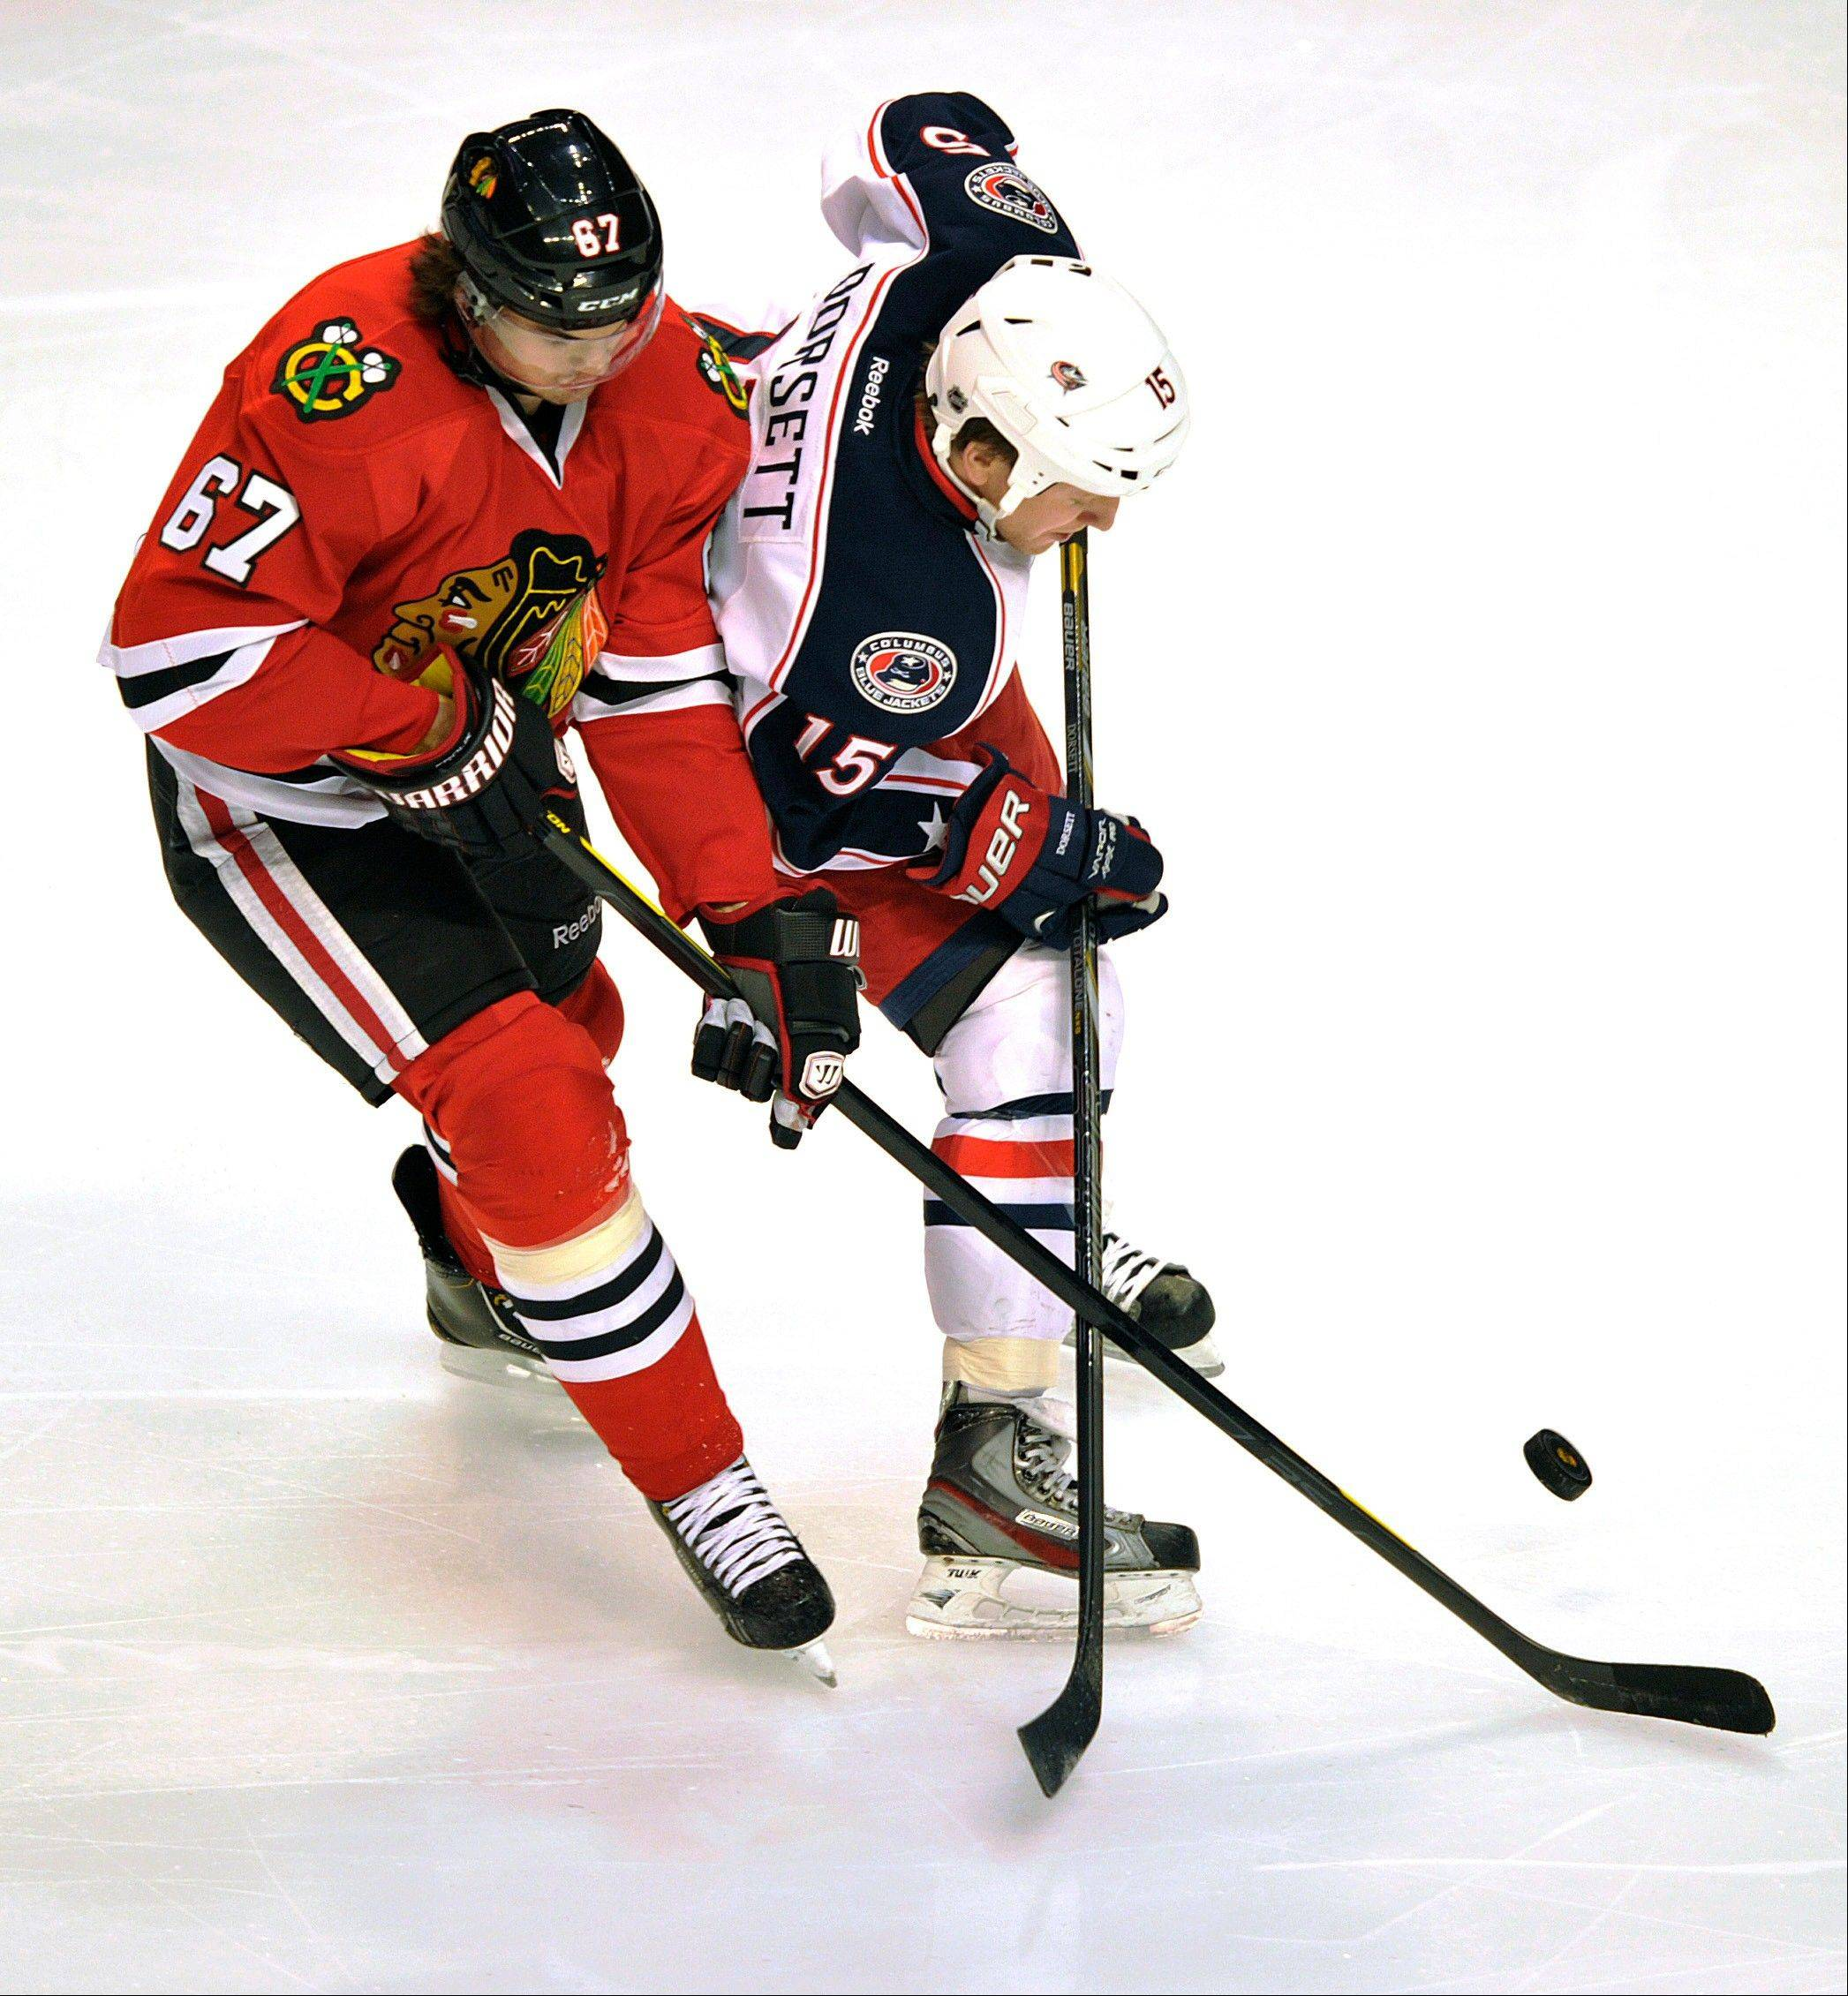 Chicago Blackhawks' Michael Frolik (67) and Columbus Blue Jackets' Derek Dorsett (15) compete for the puck during the first period of an NHL hockey game Sunday, Feb. 24, 2013, in Chicago.